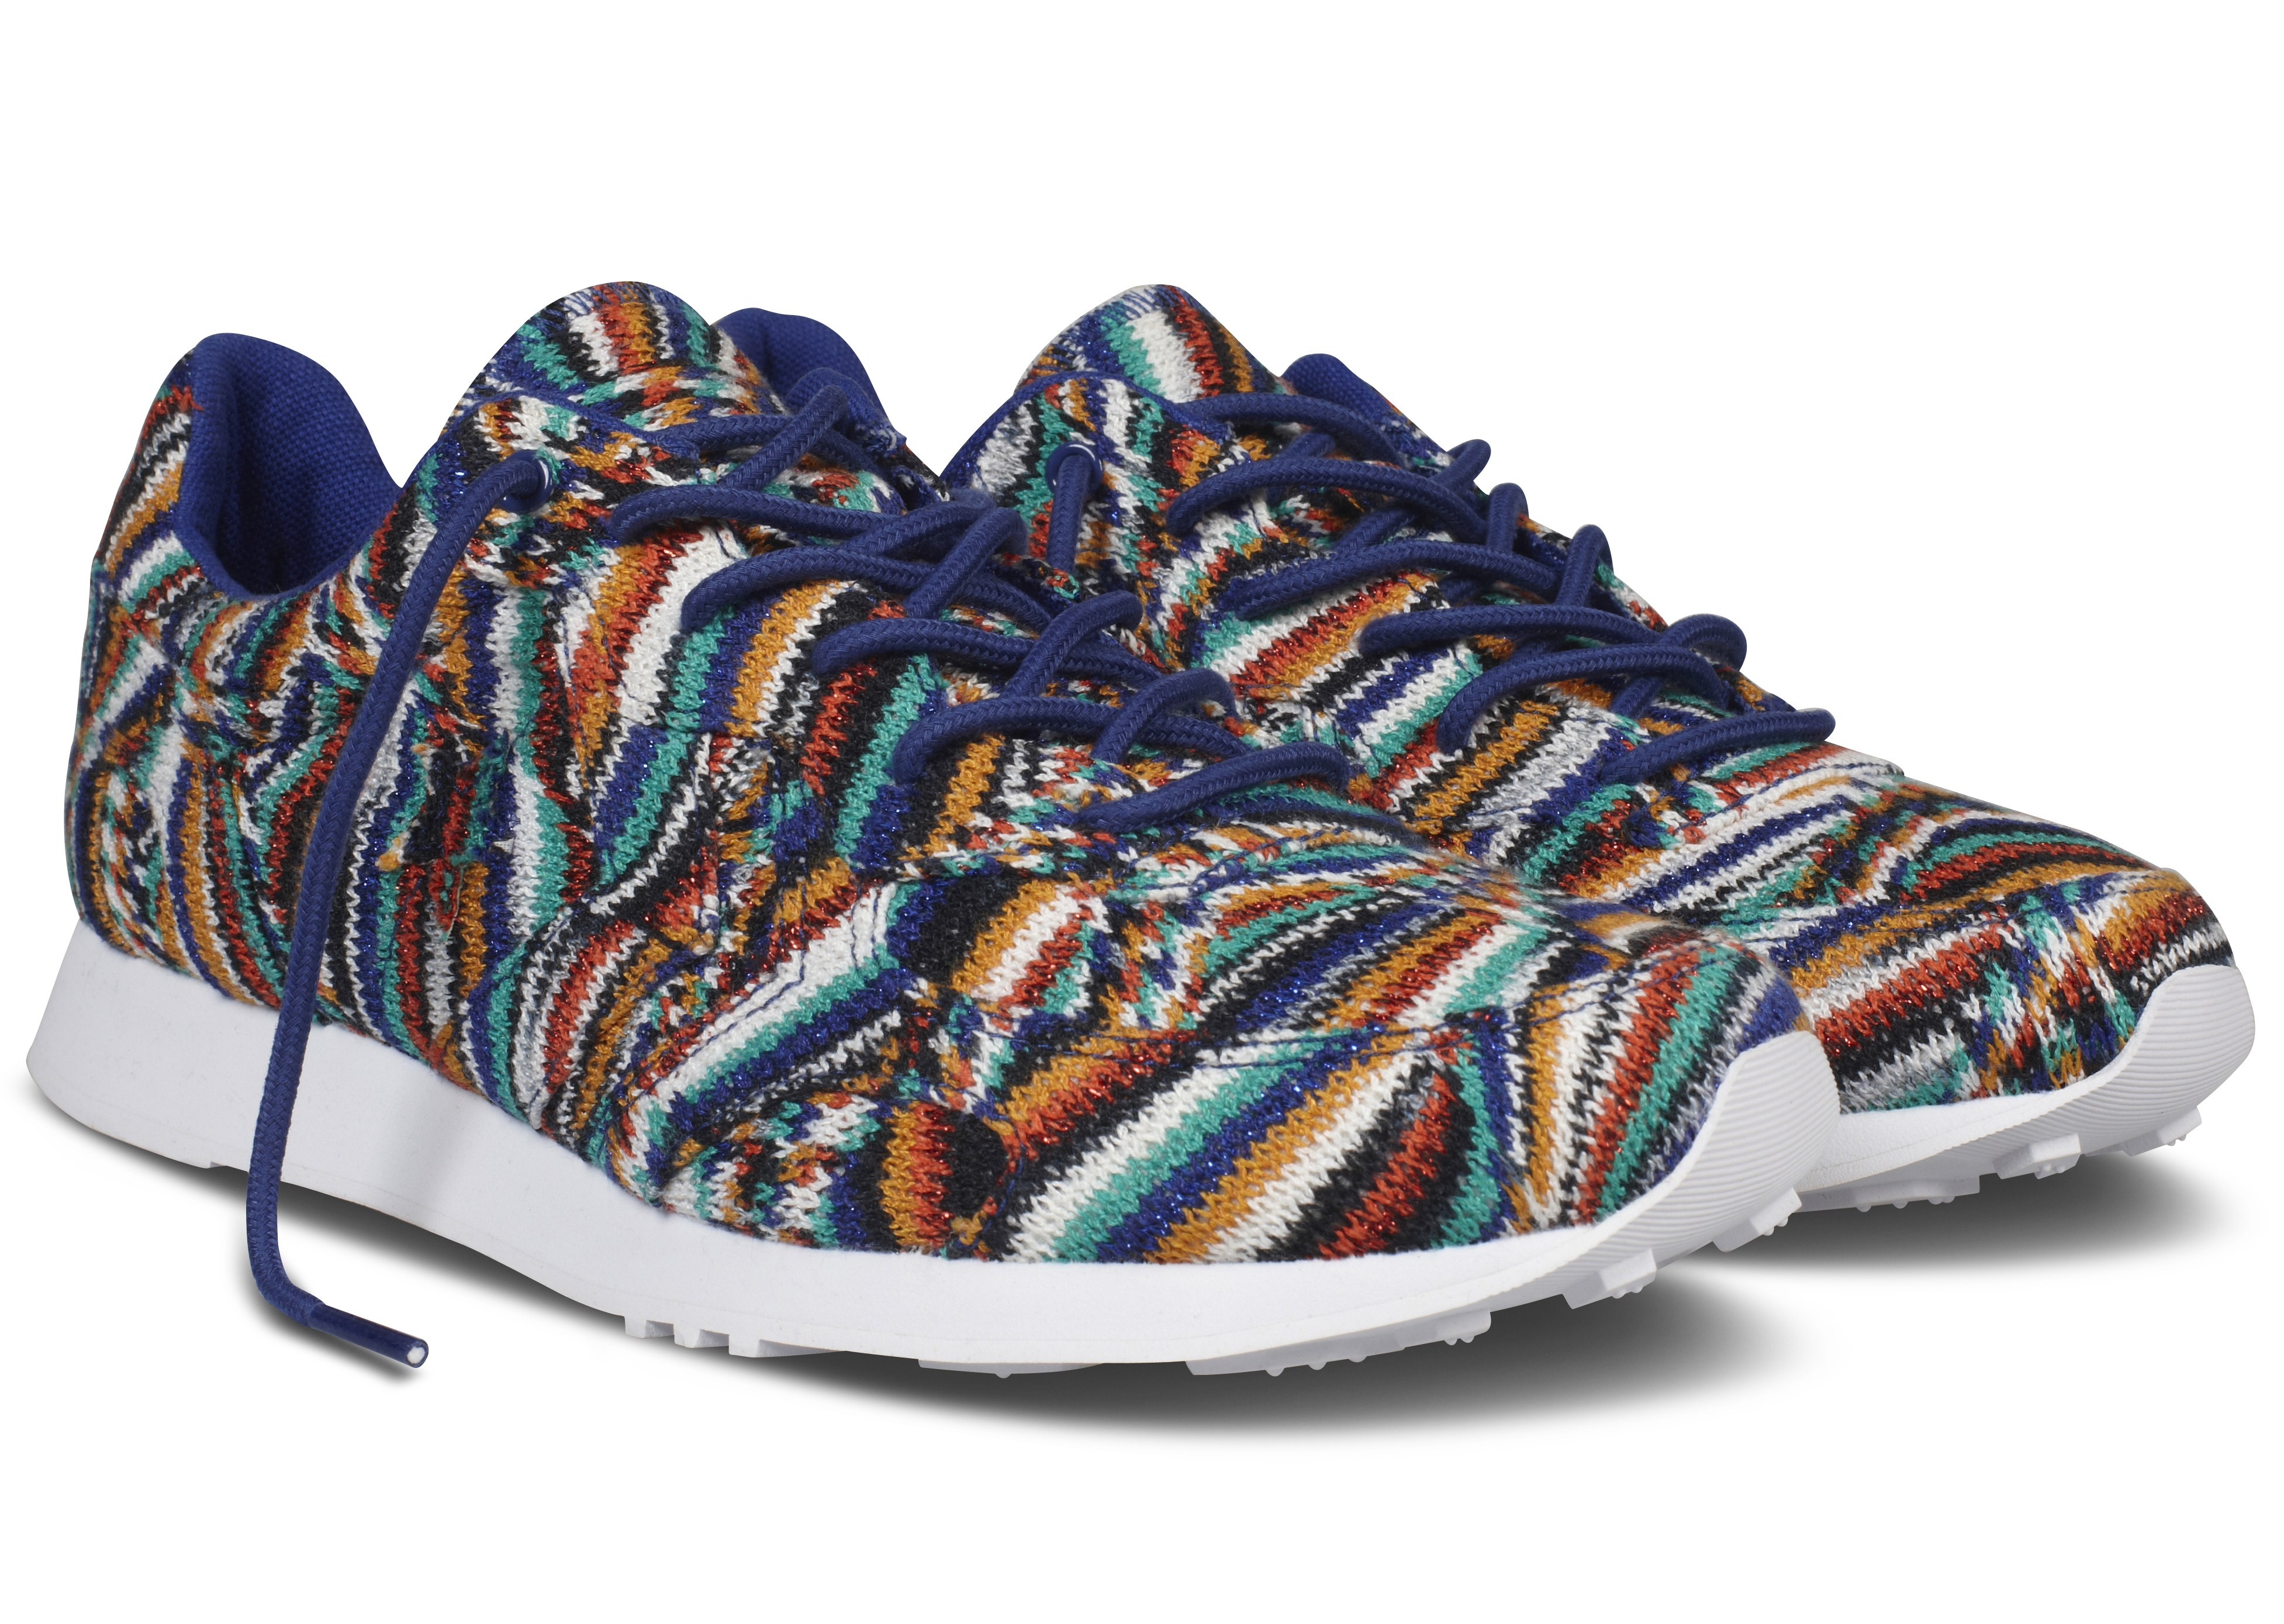 Missoni_for_Converse_Auckland_Racer_2013